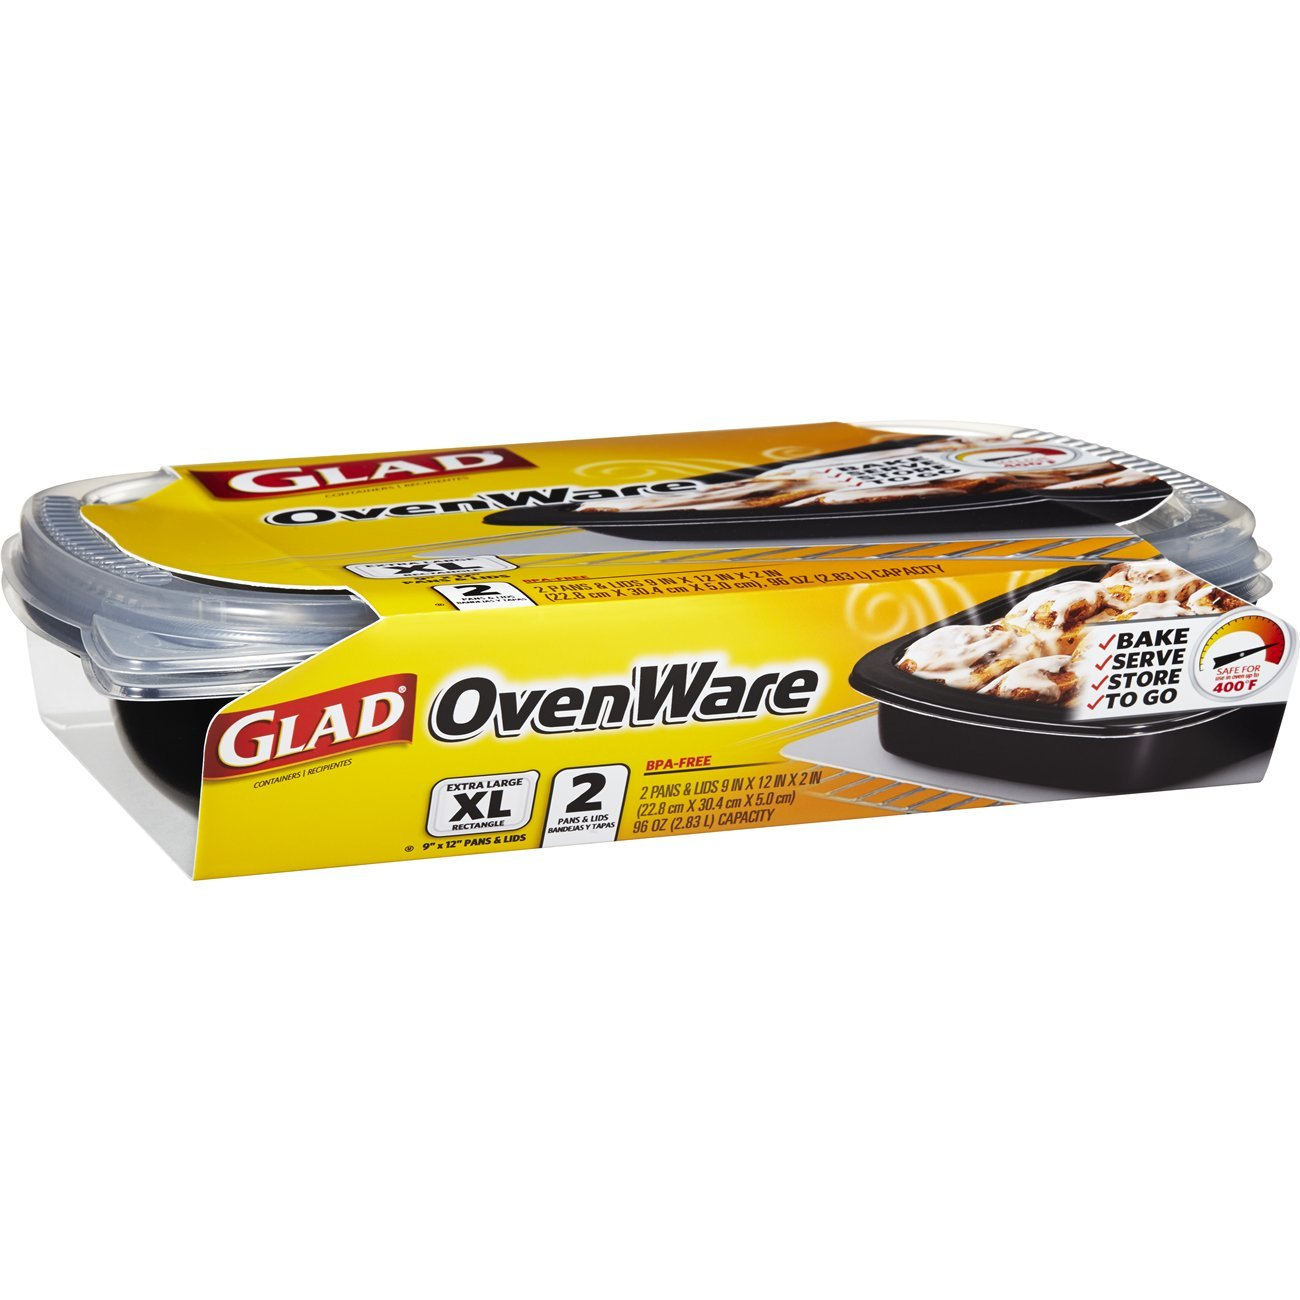 Glad Food Storage Containers - Glad OvenWare Containers - 96 Ounce - 2 Containers - 6 Pack